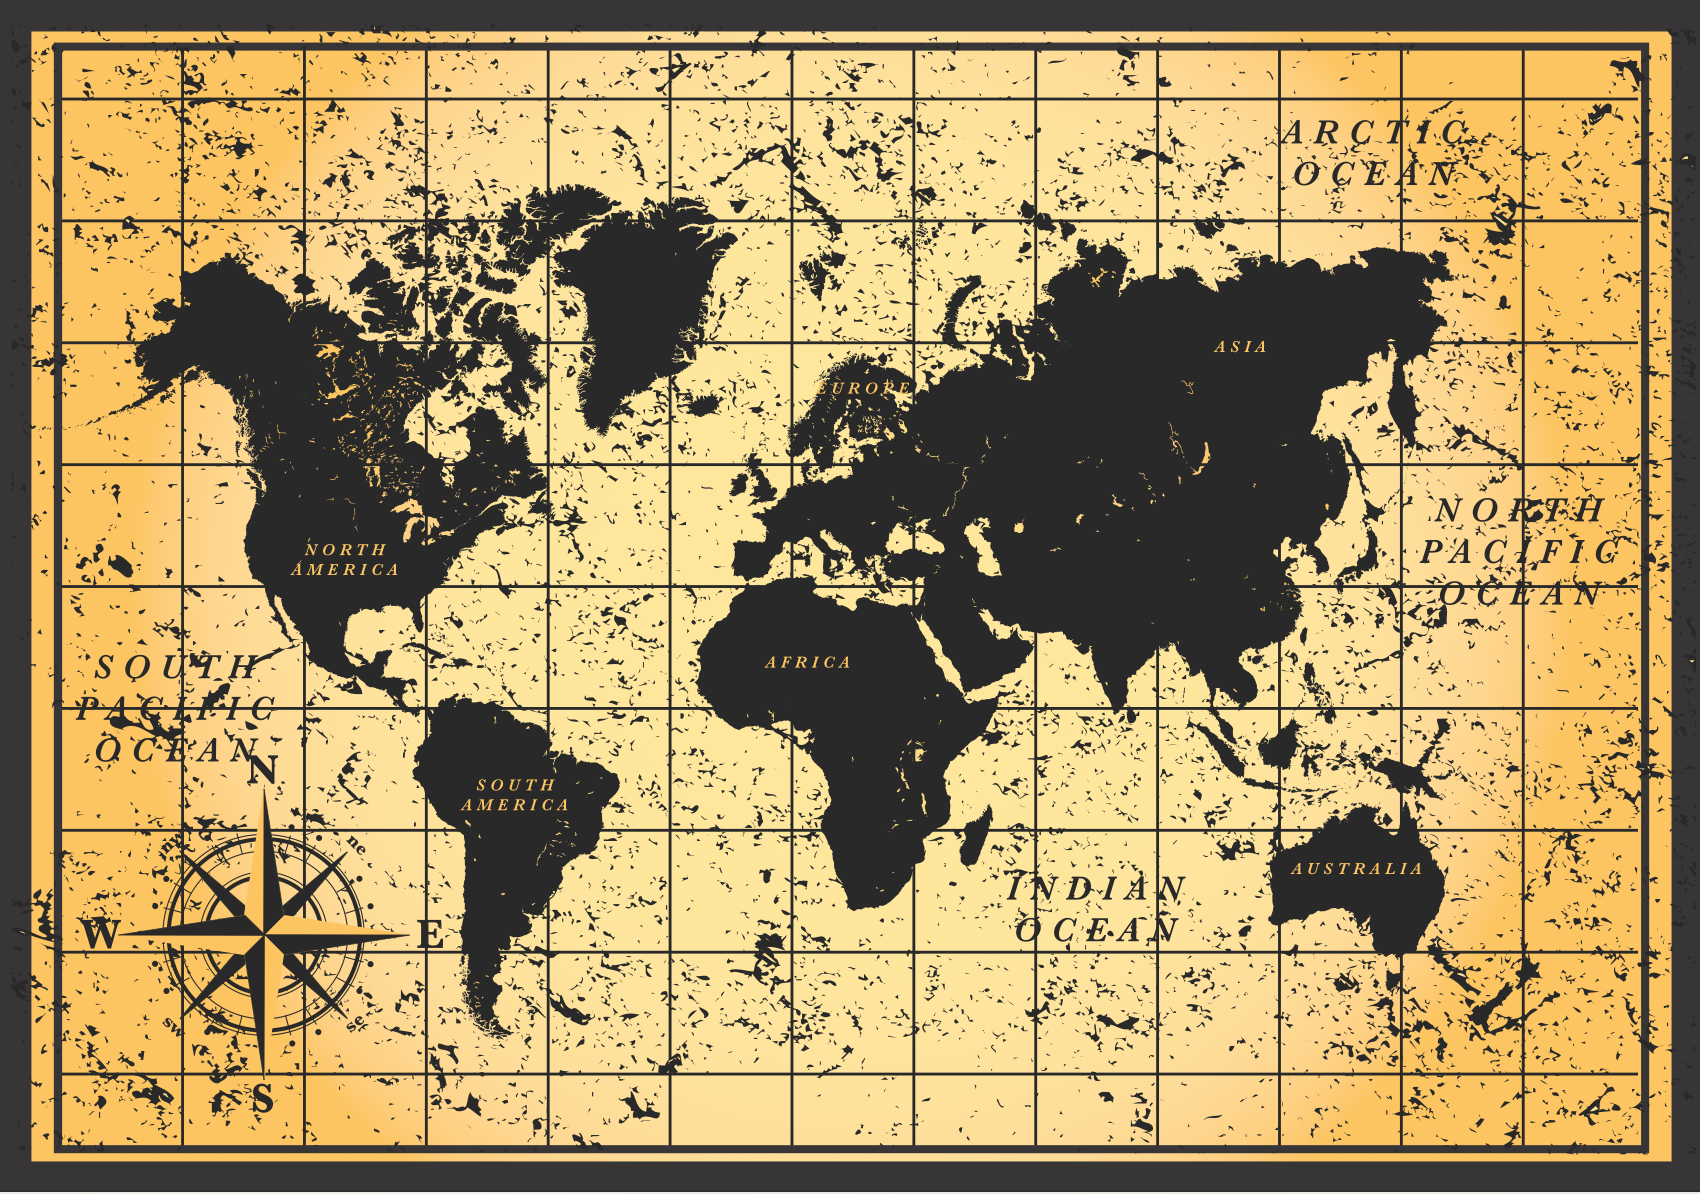 Vintage Map Wallpapers - Top Free Vintage Map Backgrounds ...